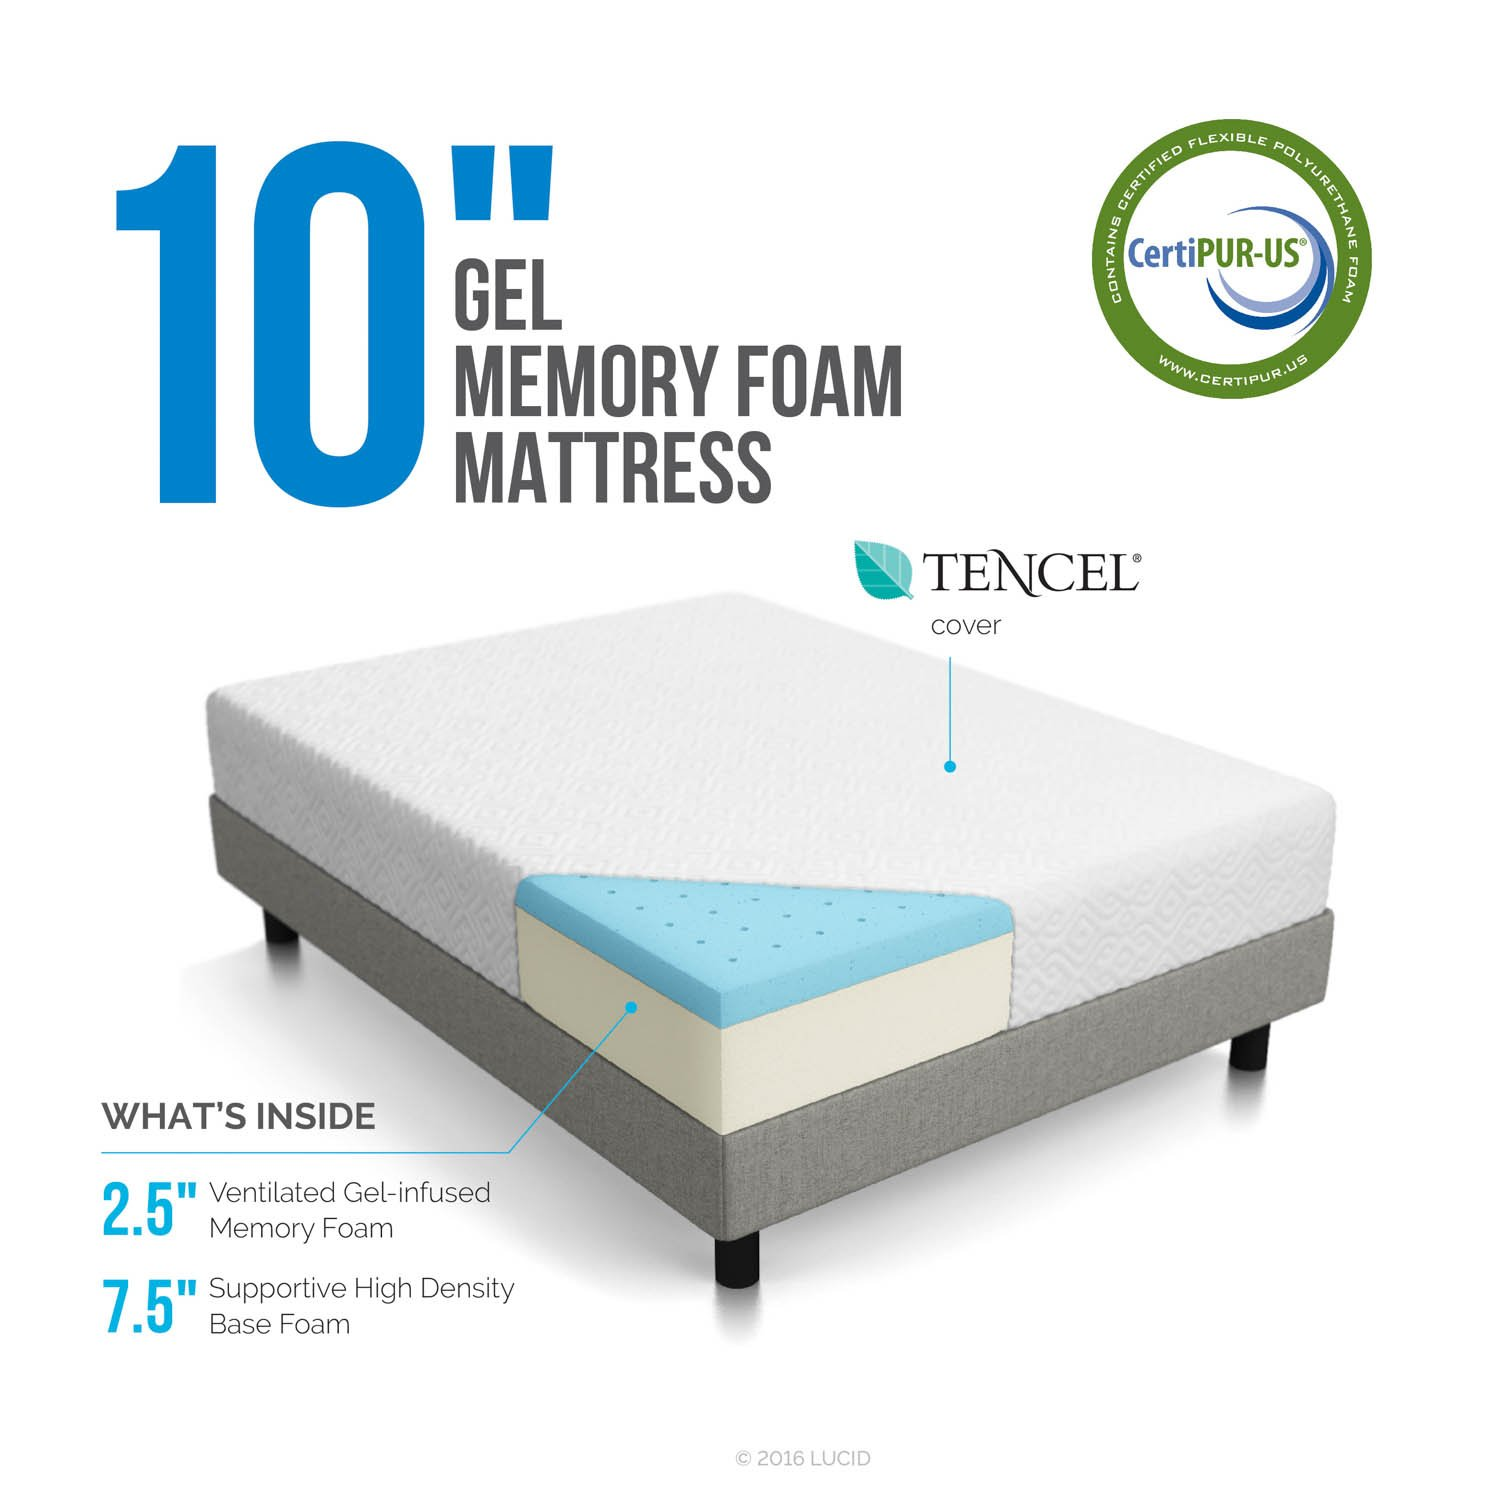 amazoncom lucid 10 inch gel memory foam mattress dual layered certipur us certified 10 year warranty queen kitchen dining - Memory Foam Mattress